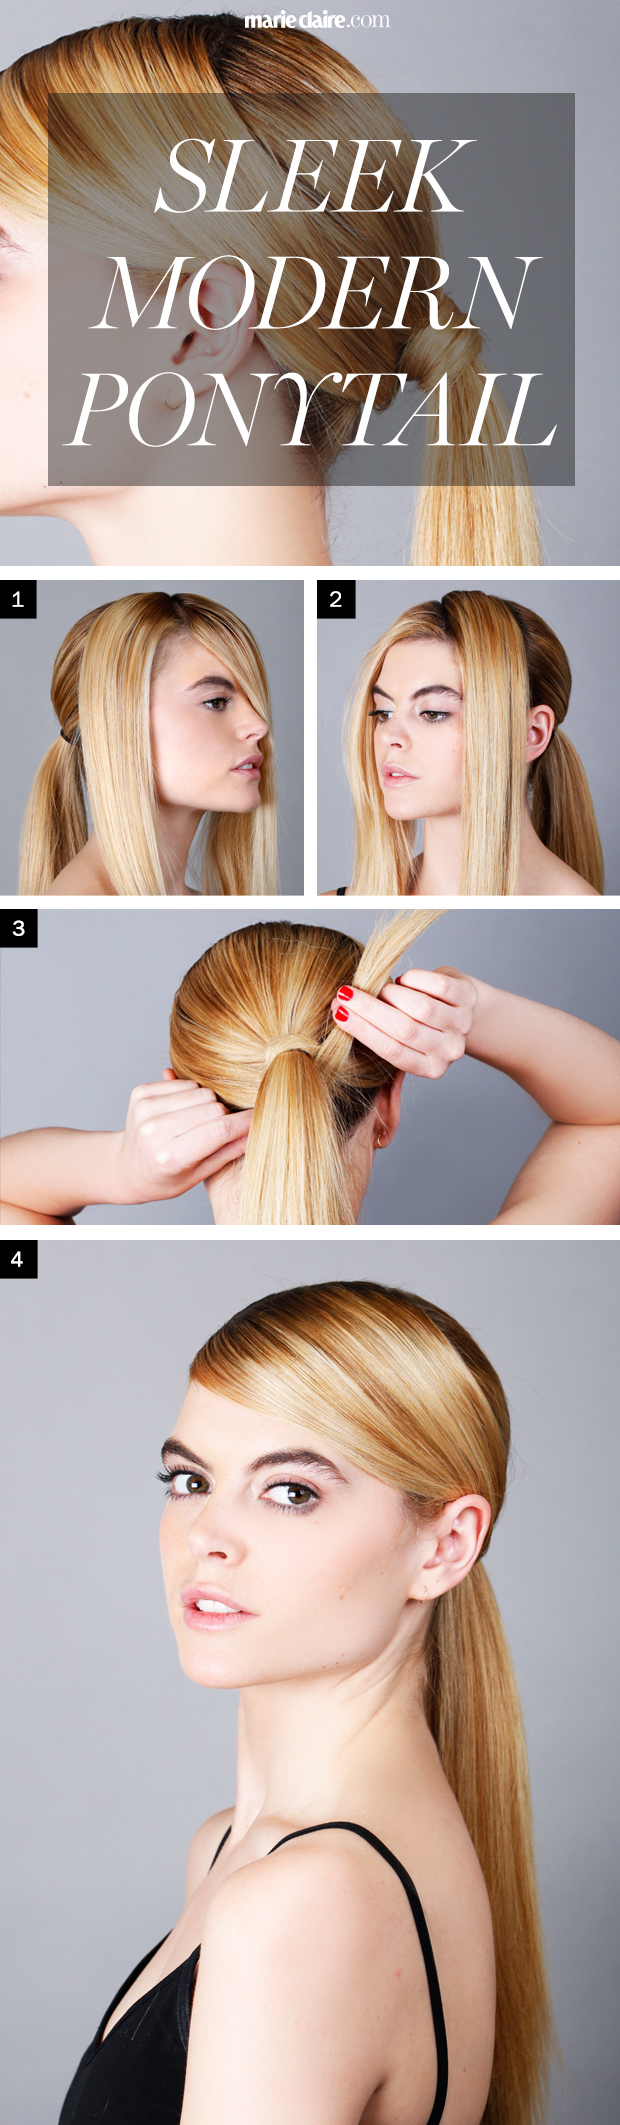 54833930f11a5_-_mc_hairtutorial_sleekmodernponytail.jpg